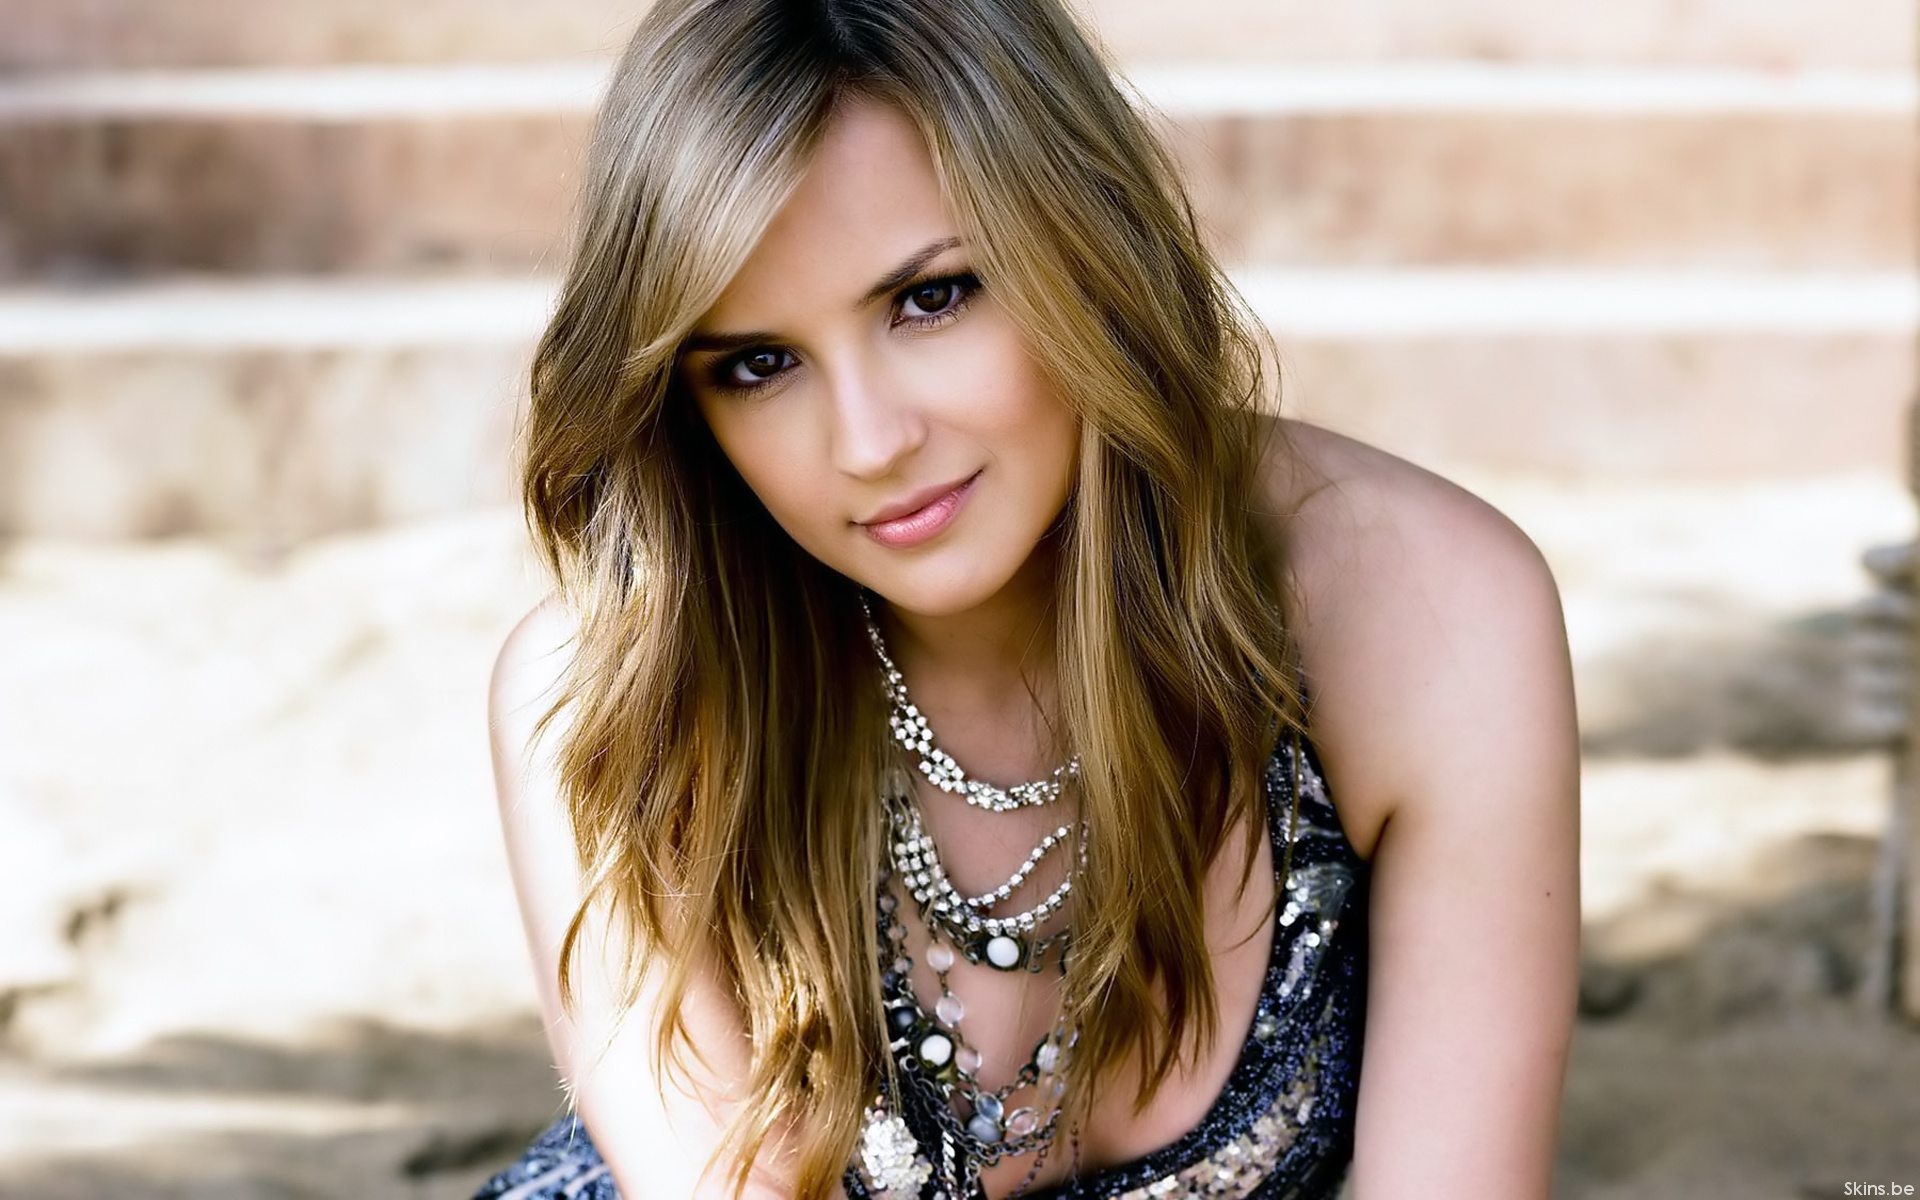 Rachael Leigh Cook Please STOP AdBlock Browser plugin to view this pic and support our site!